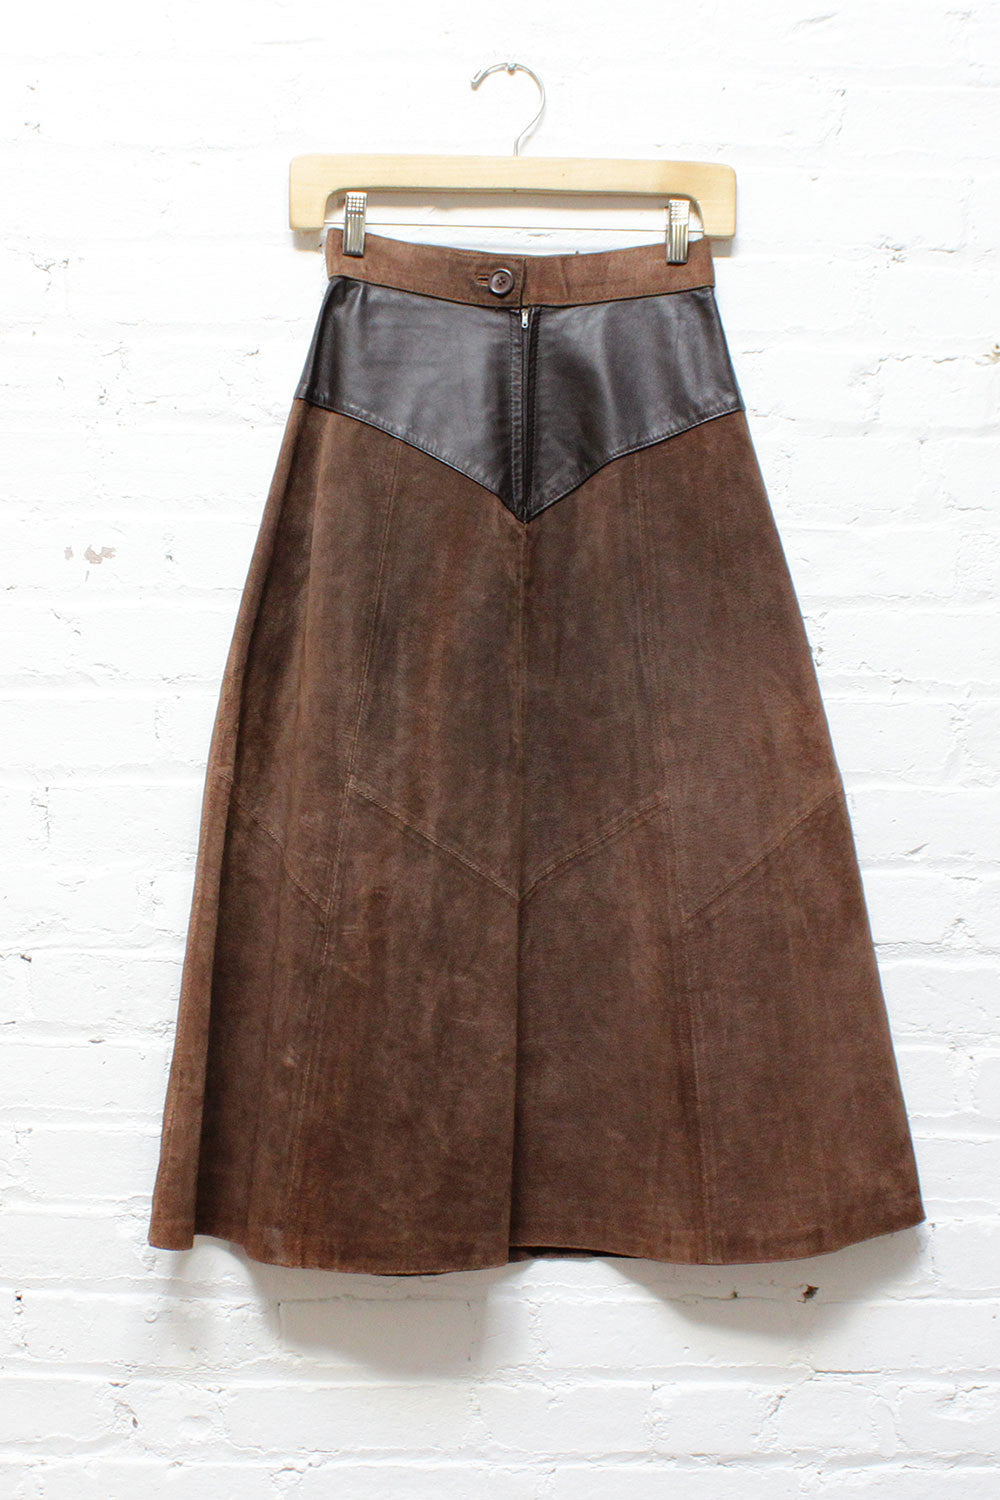 Patched Leather High Waist Skirt XS